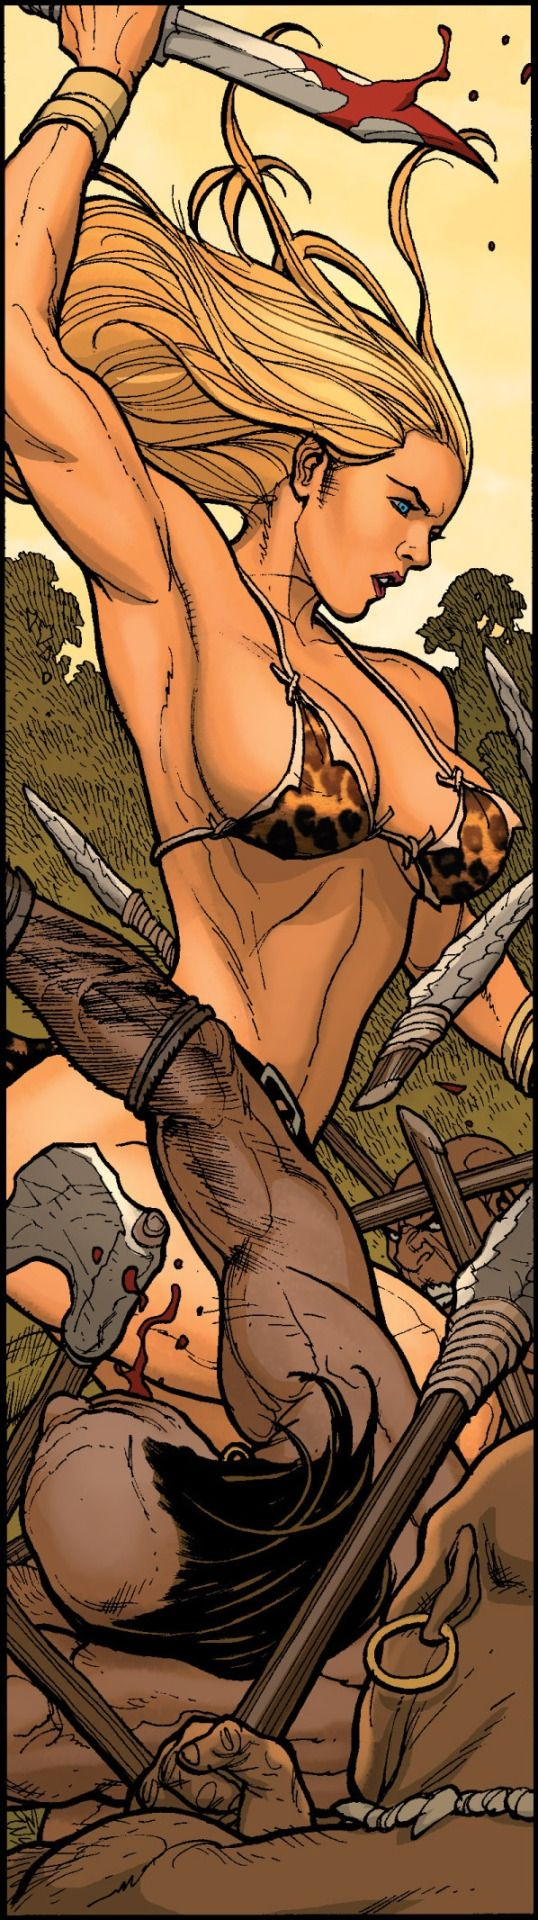 Hot Jungle Cartoon Girl Photo XxX